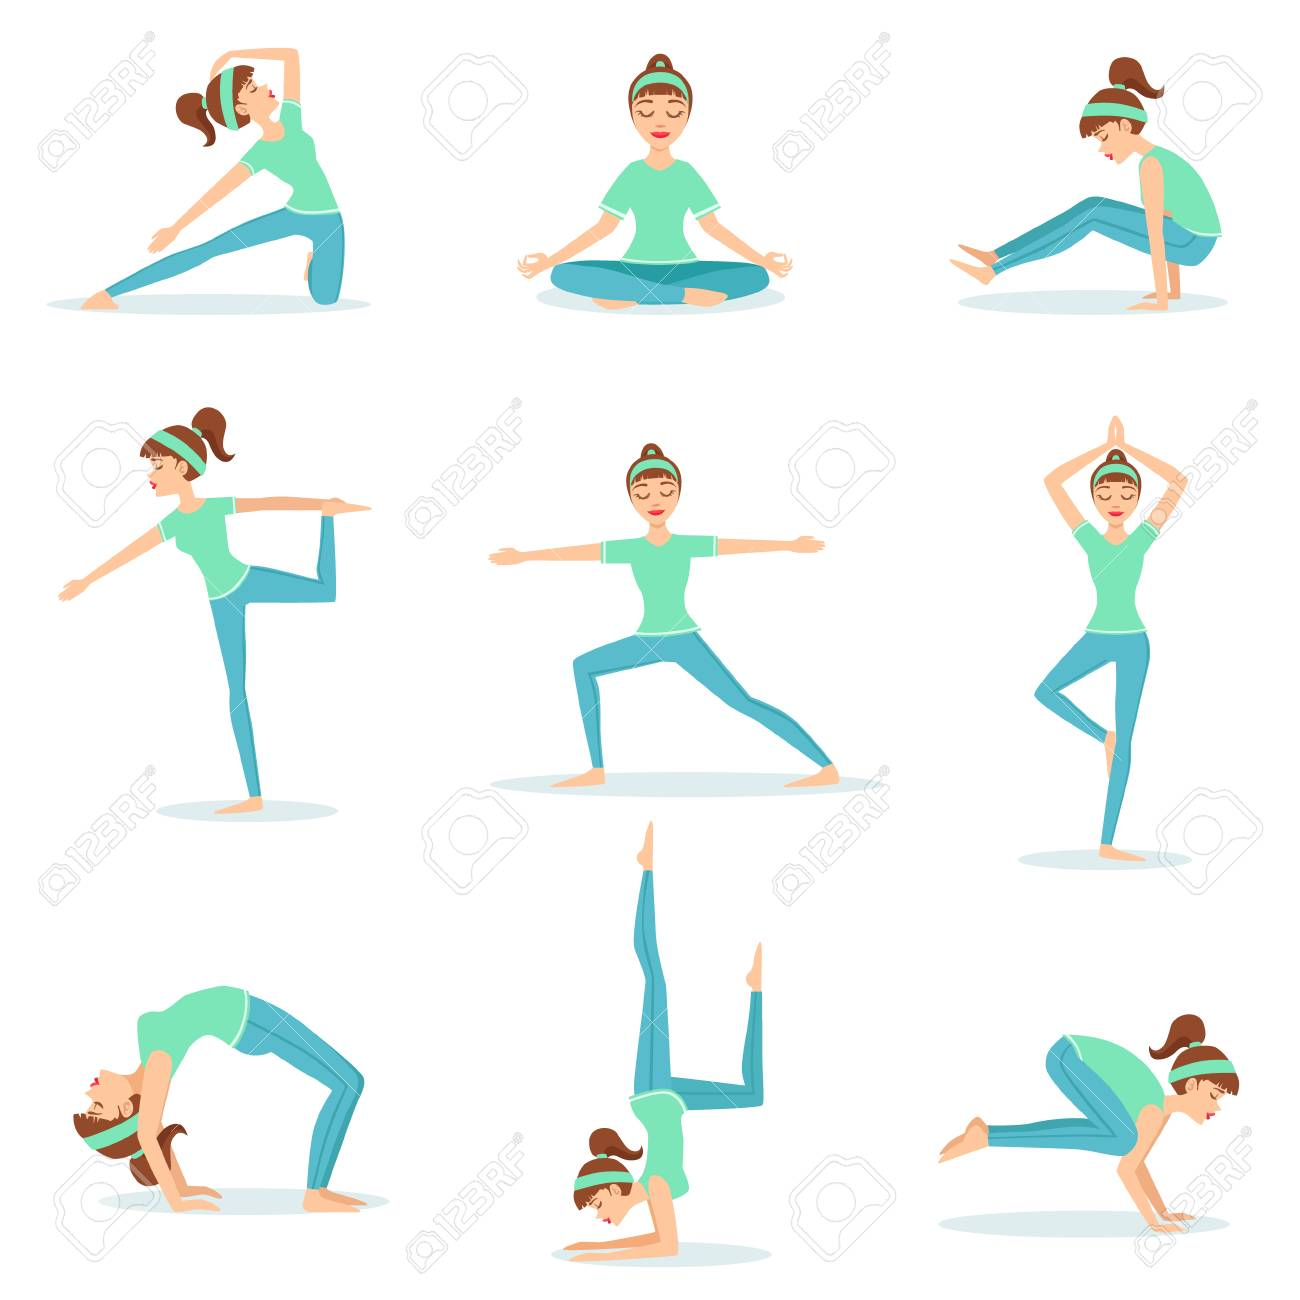 Girl In Blue Training Clothes Demonstrating Yoga Postures Set Royalty Free Cliparts Vectors And Stock Illustration Image 67199504